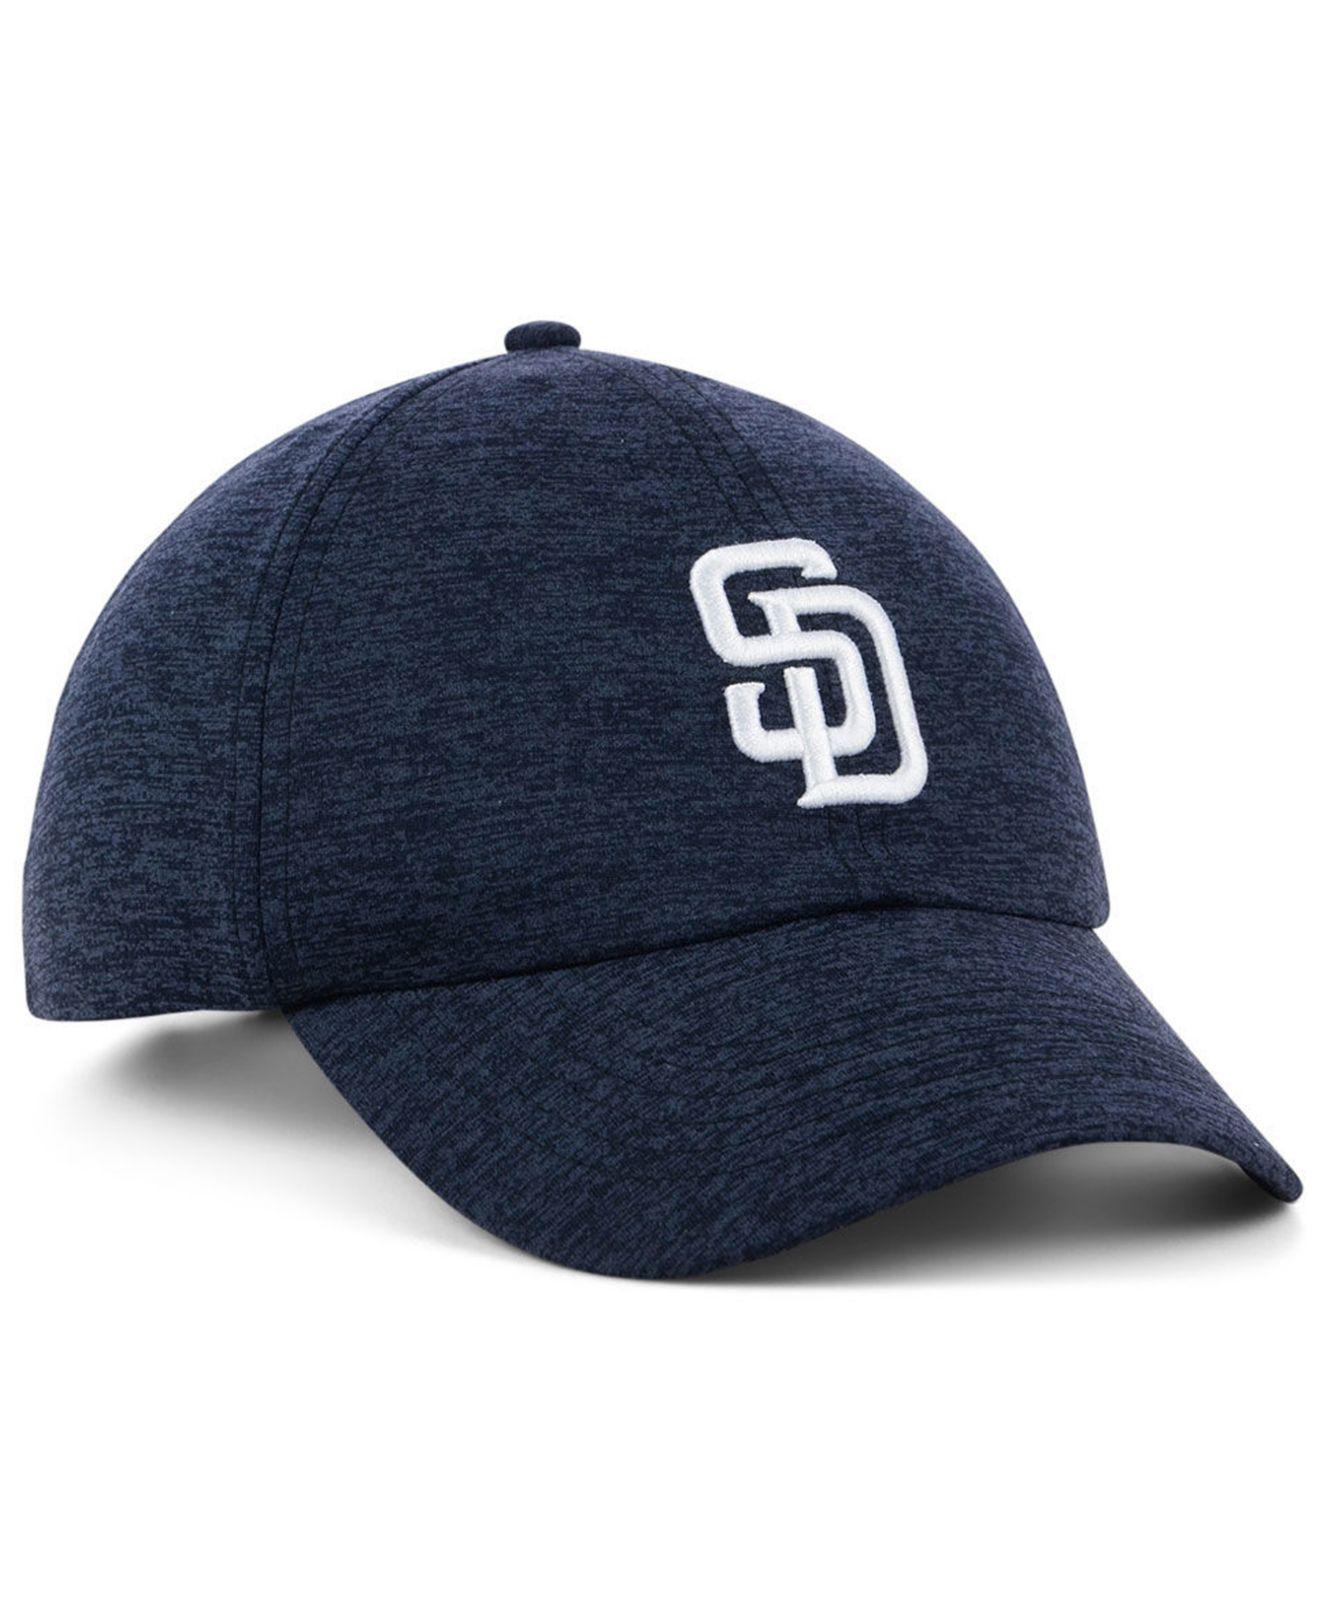 huge discount 5d81f 9bcc2 ... shop where to buy under armour blue san diego padres renegade twist cap  lyst. view